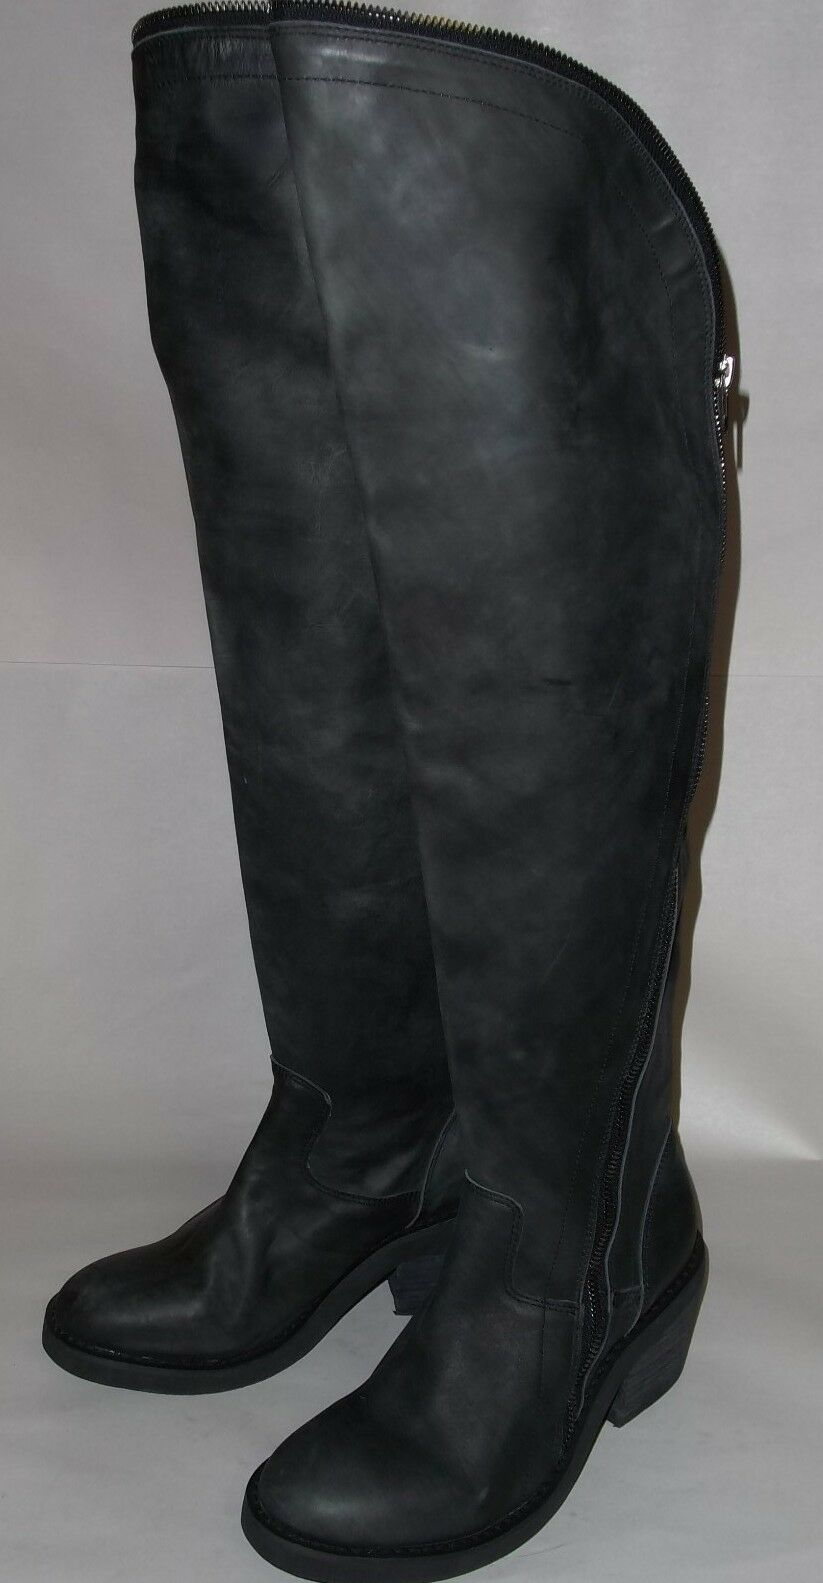 Jeffrey Campbell Black Airtight Over the Knee Zippered Boots 7.5 NWOB